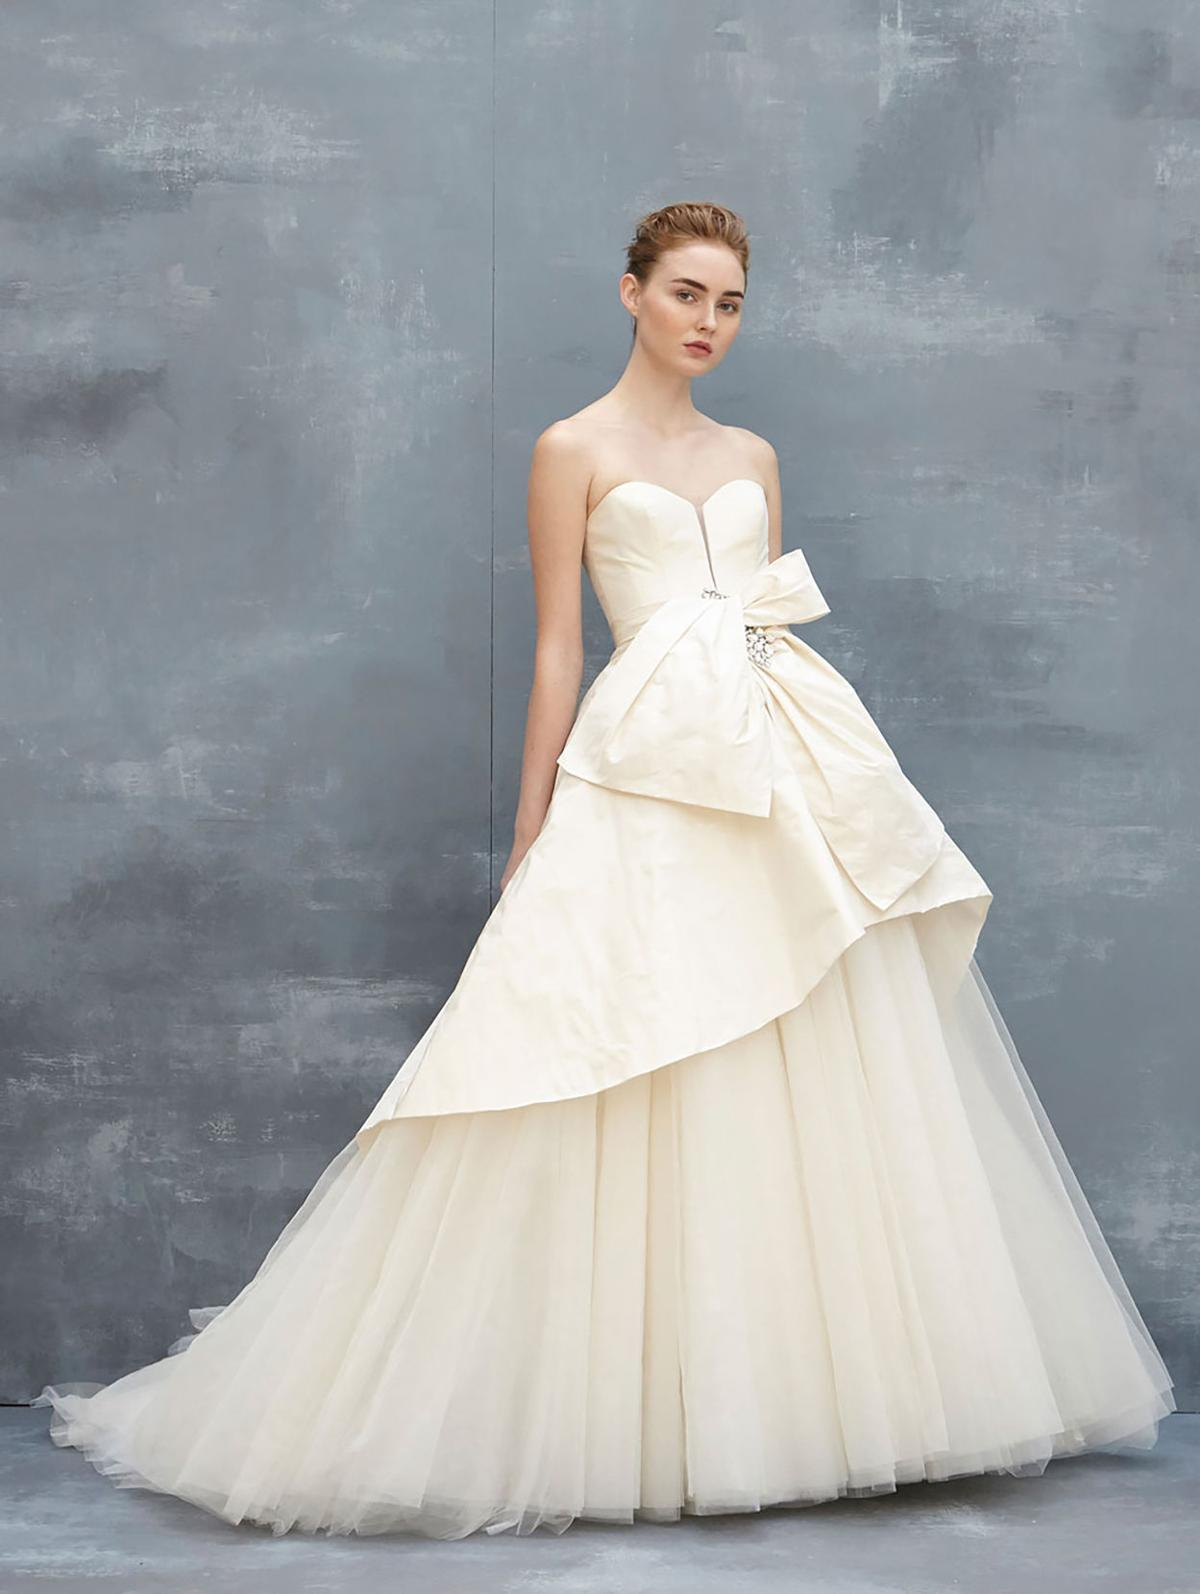 The Bridal Fashion Career Of Aberra Ends With A Somber Close Lifestyle Bendbulletin Com